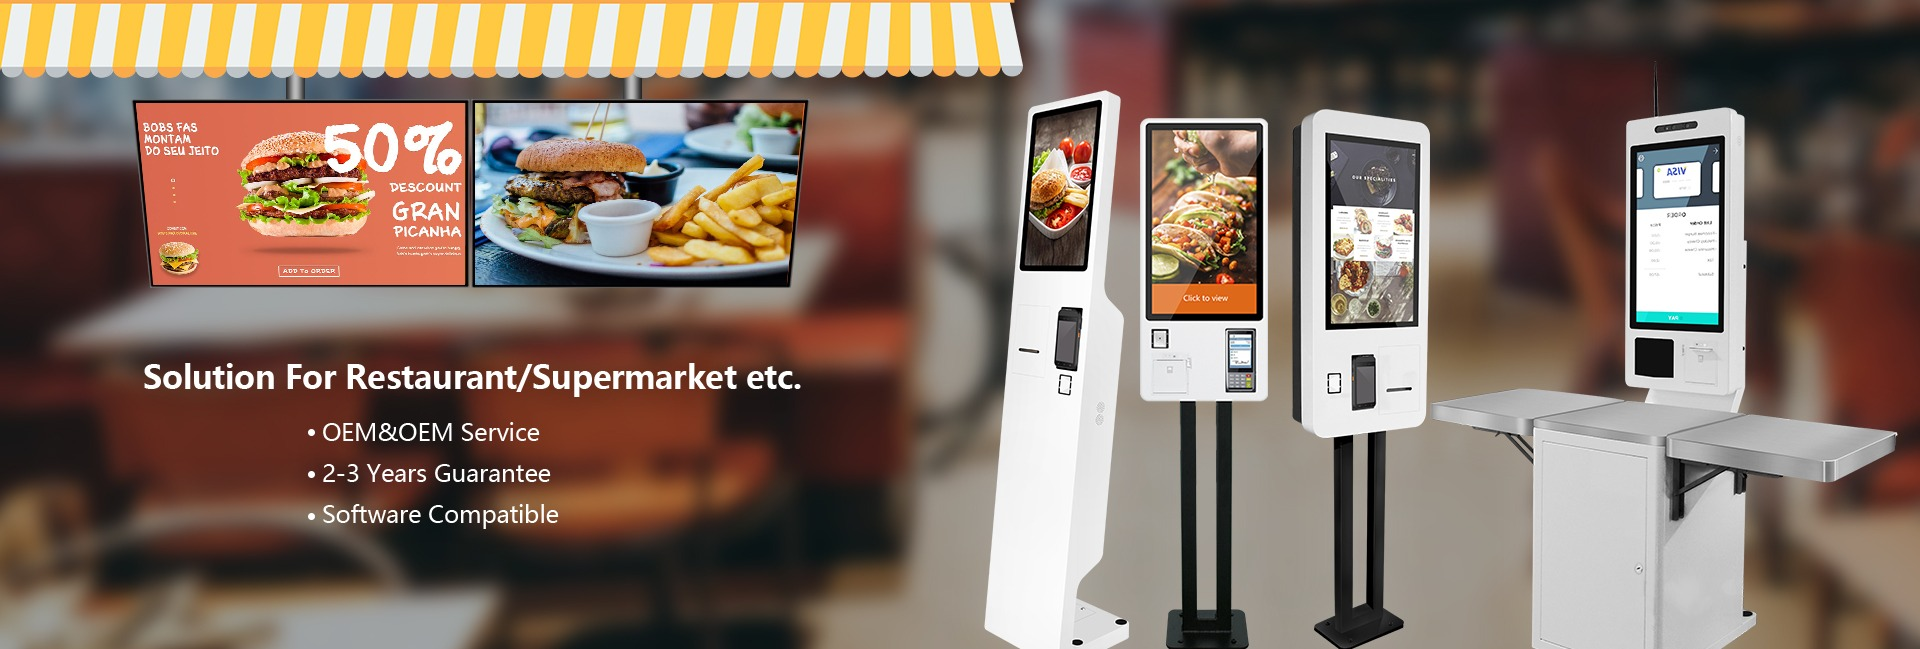 food ordering apps uk Digital Screens and self order kiosk